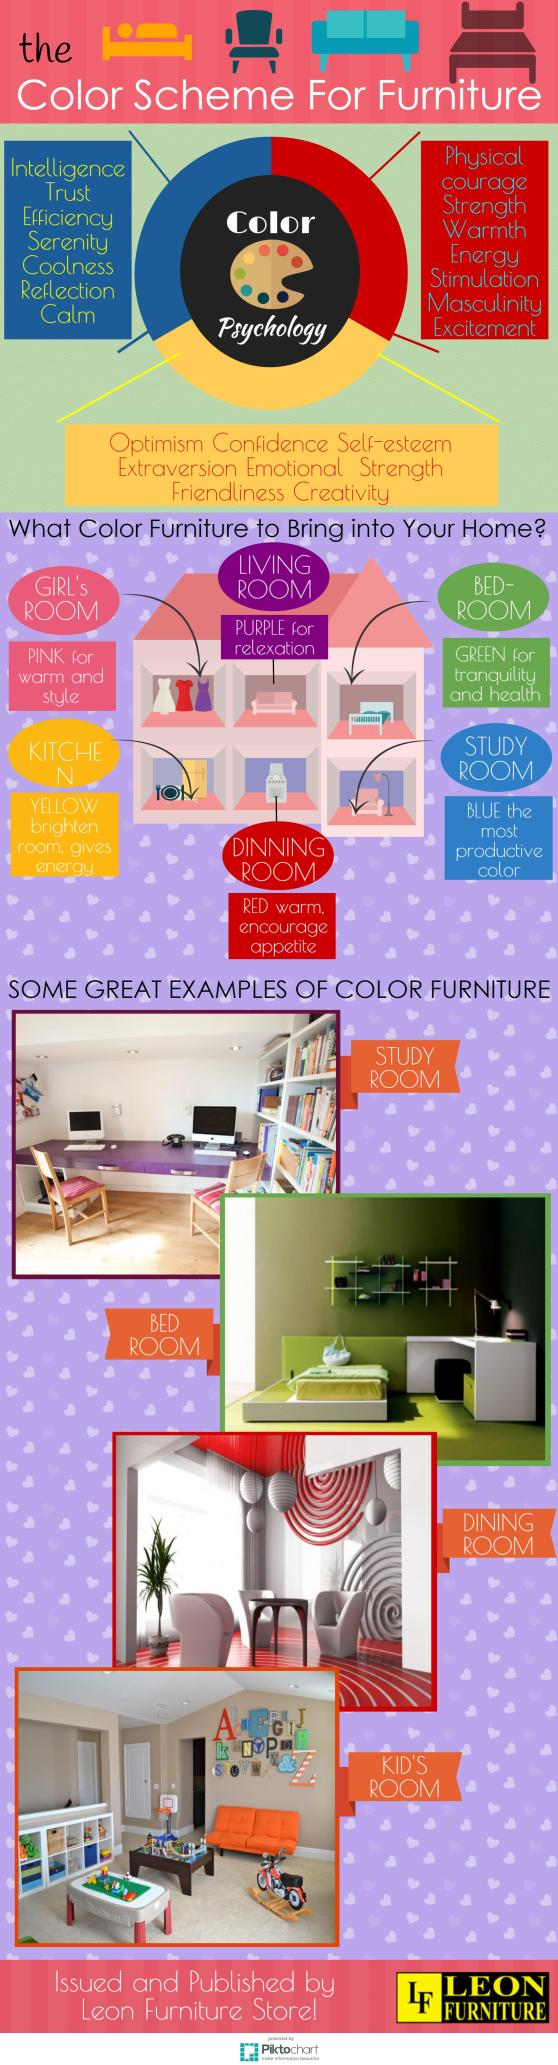 Color Scheme For Furniture